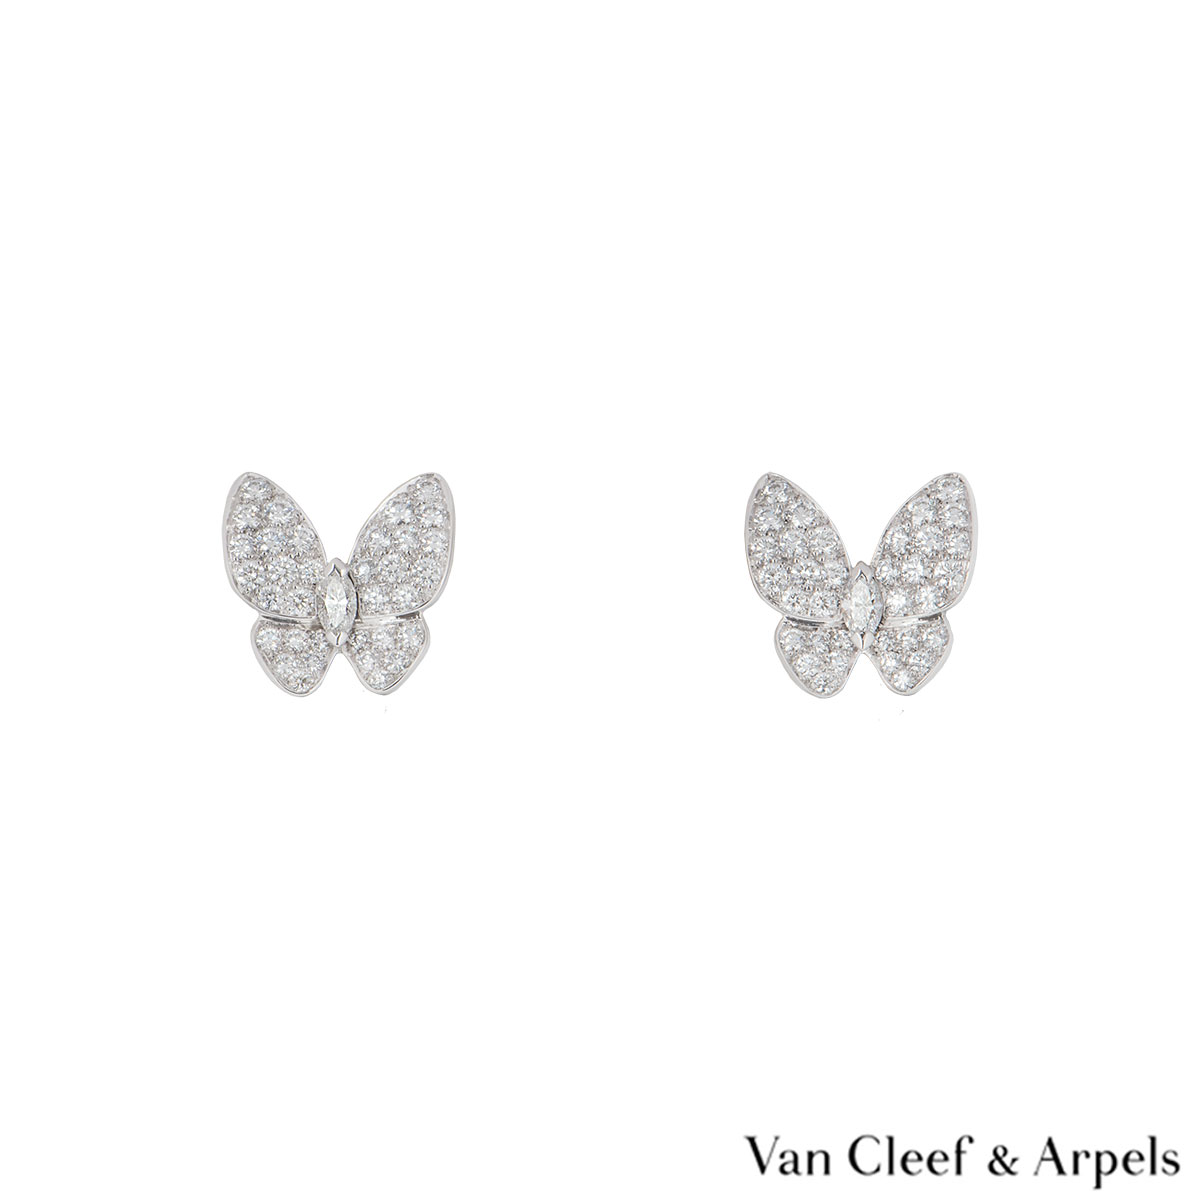 Van Cleef & Arpels White Gold Diamond Fauna Butterfly Earrings VCARB82900